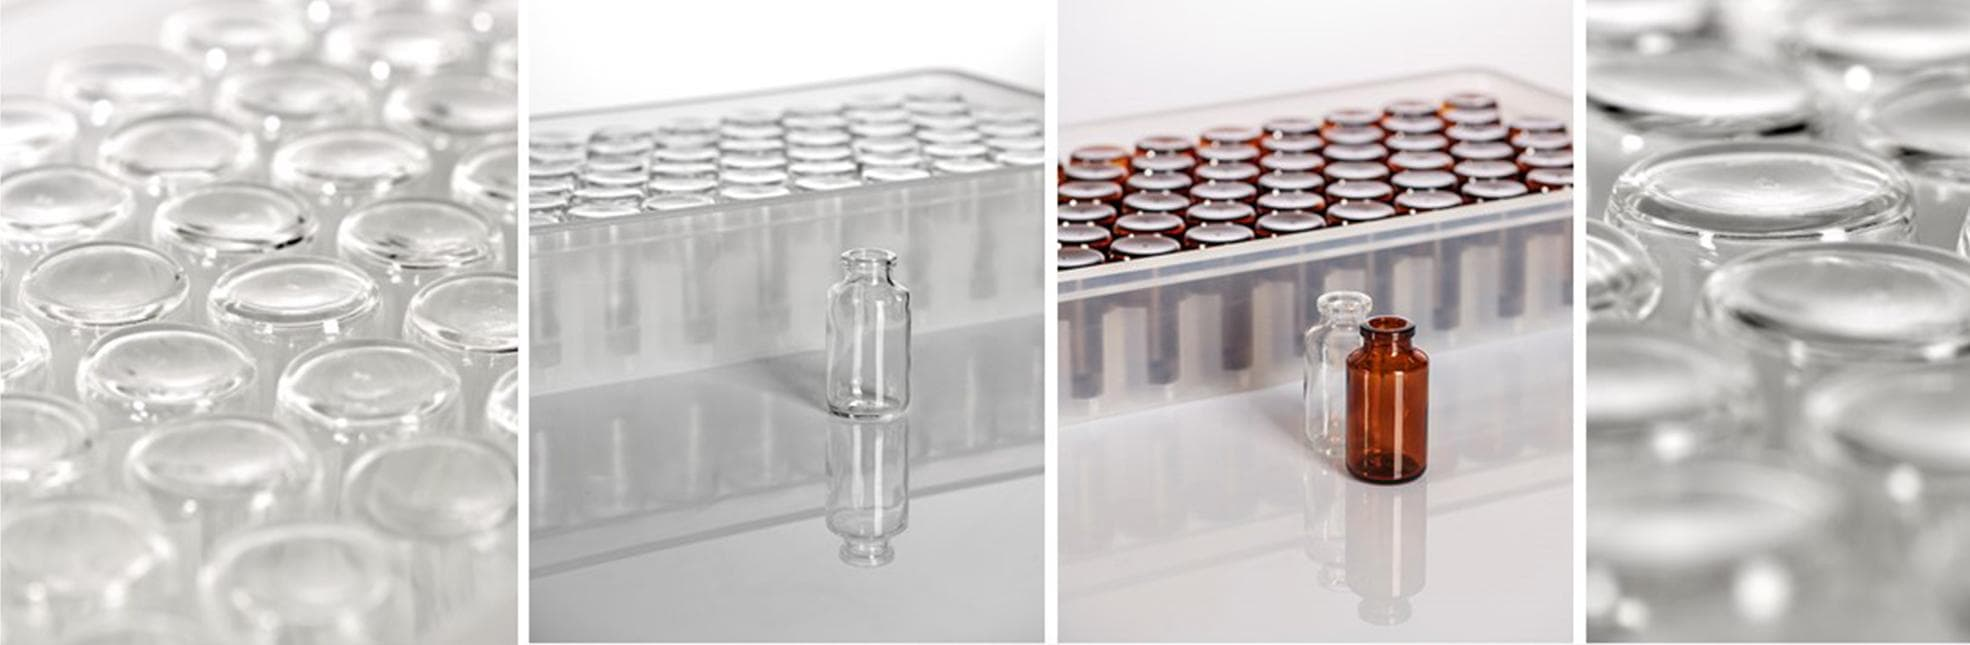 Type I molded glass vials